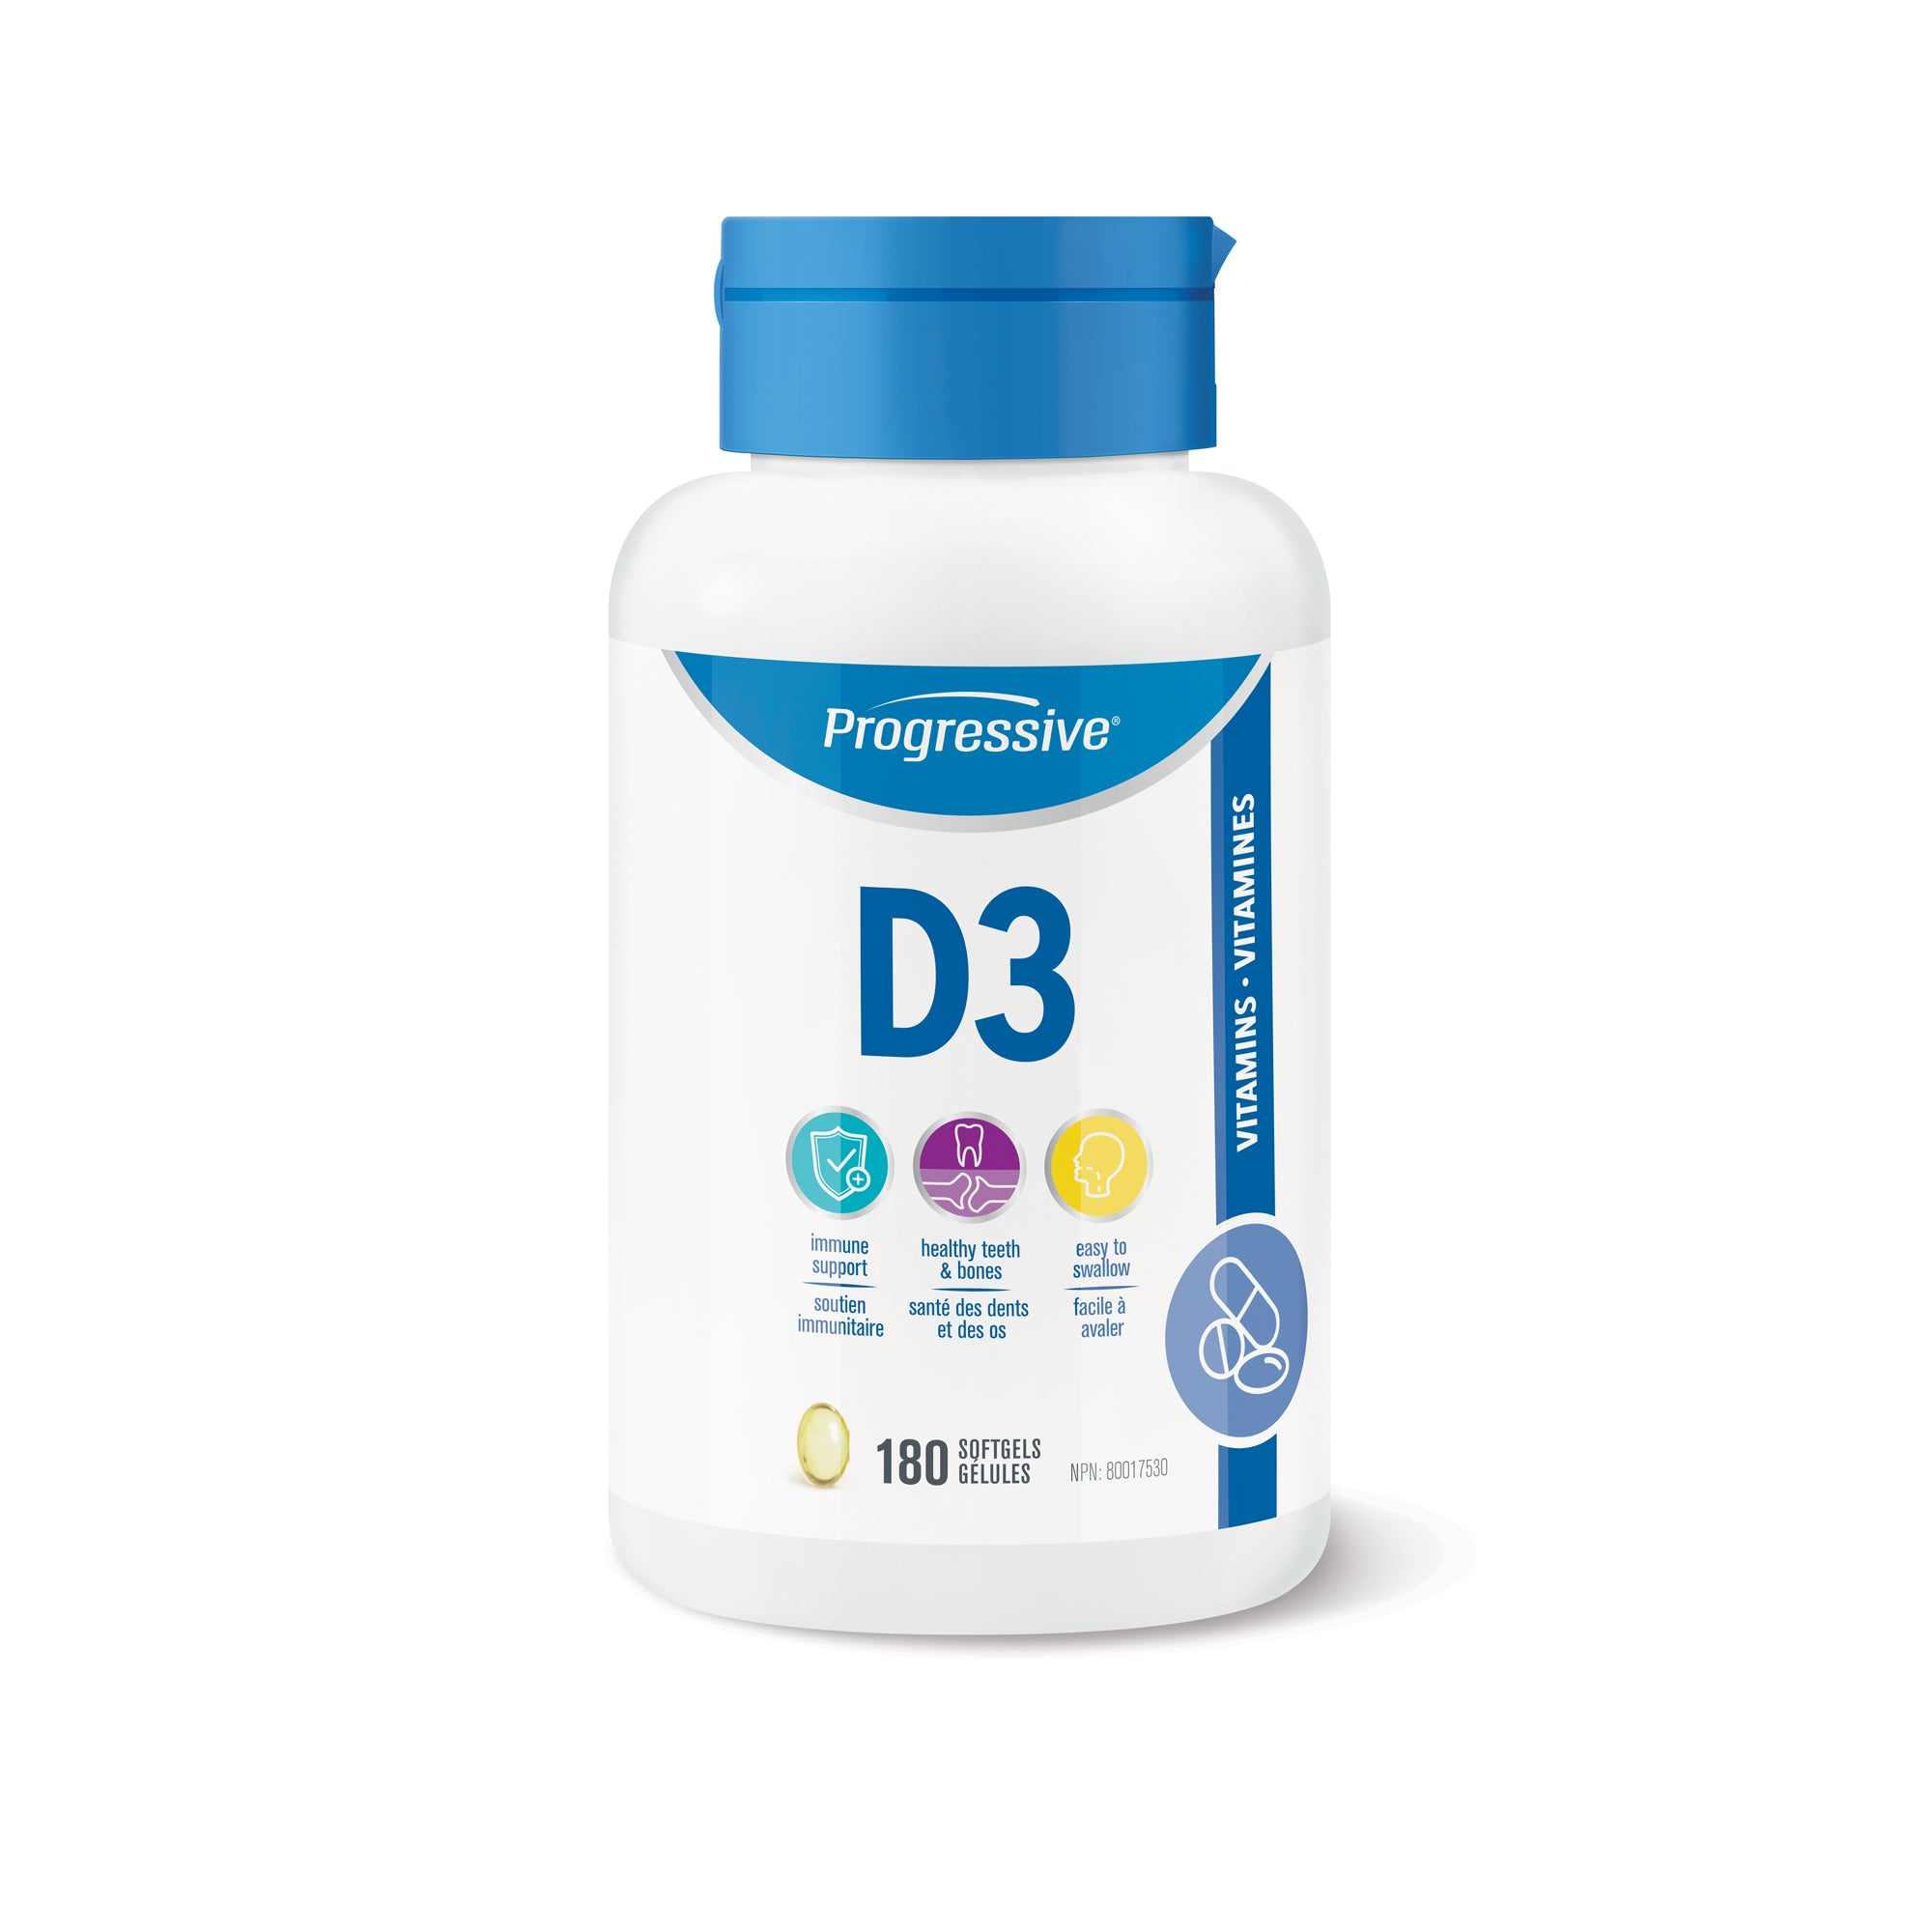 PV3519 Vitamin D3 Bottle